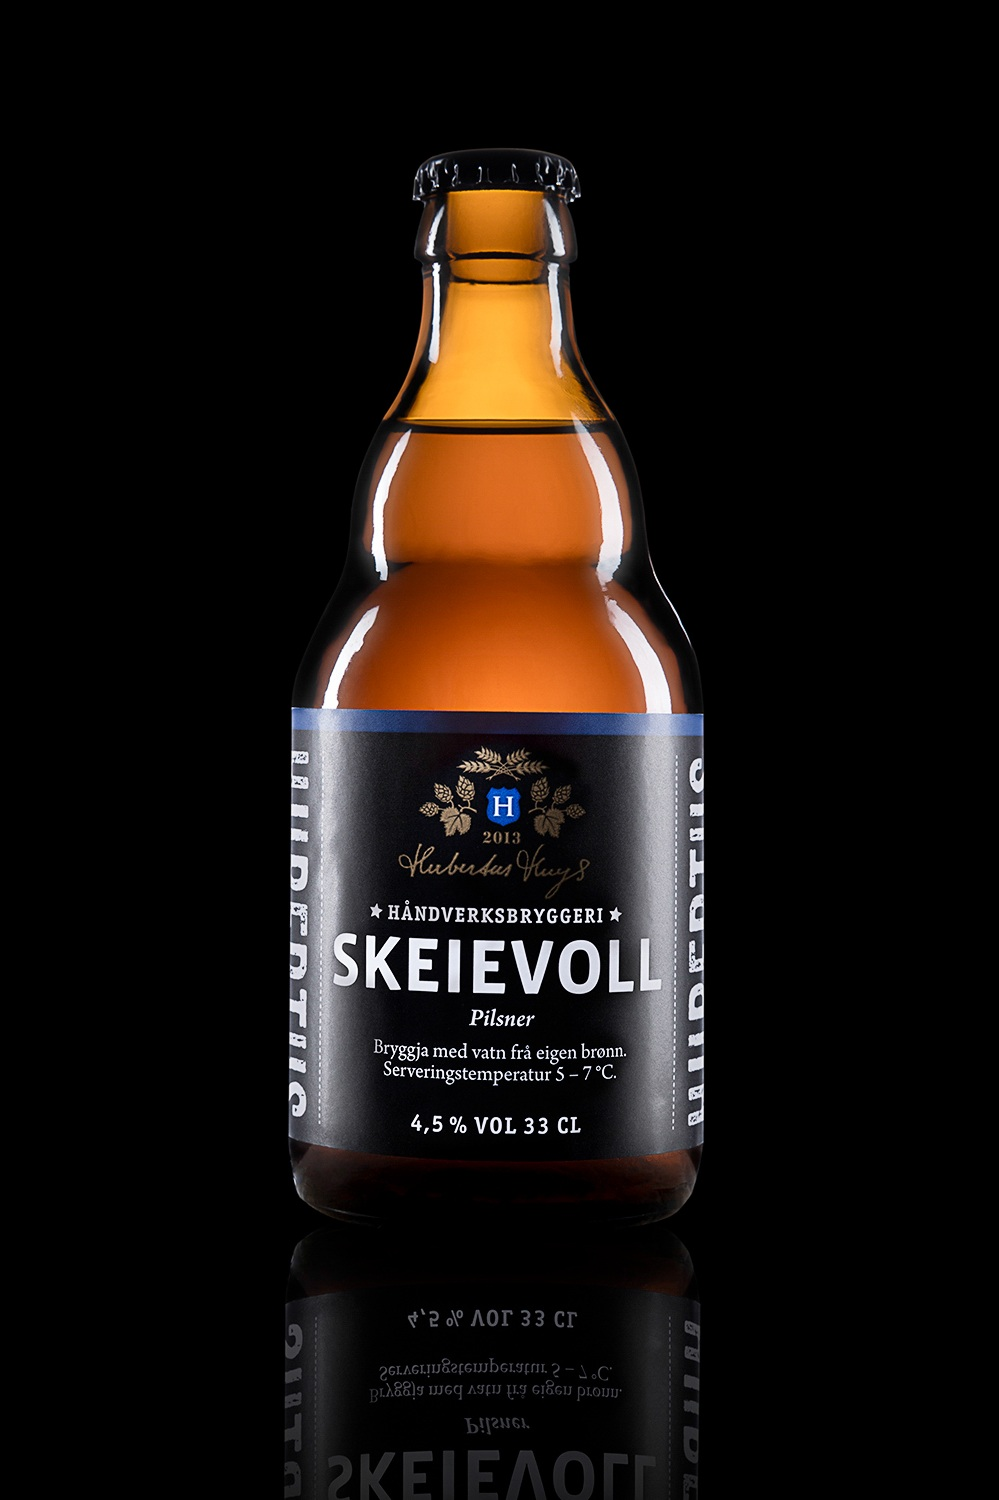 Skeievoll - Type: Pilsner.Color: Light.Aroma: Light malt and German hops.Flavor: Medium bitterness, neutral.Contents: Alcohol 4,5%.Food pairing: Chicken, fish and salads.